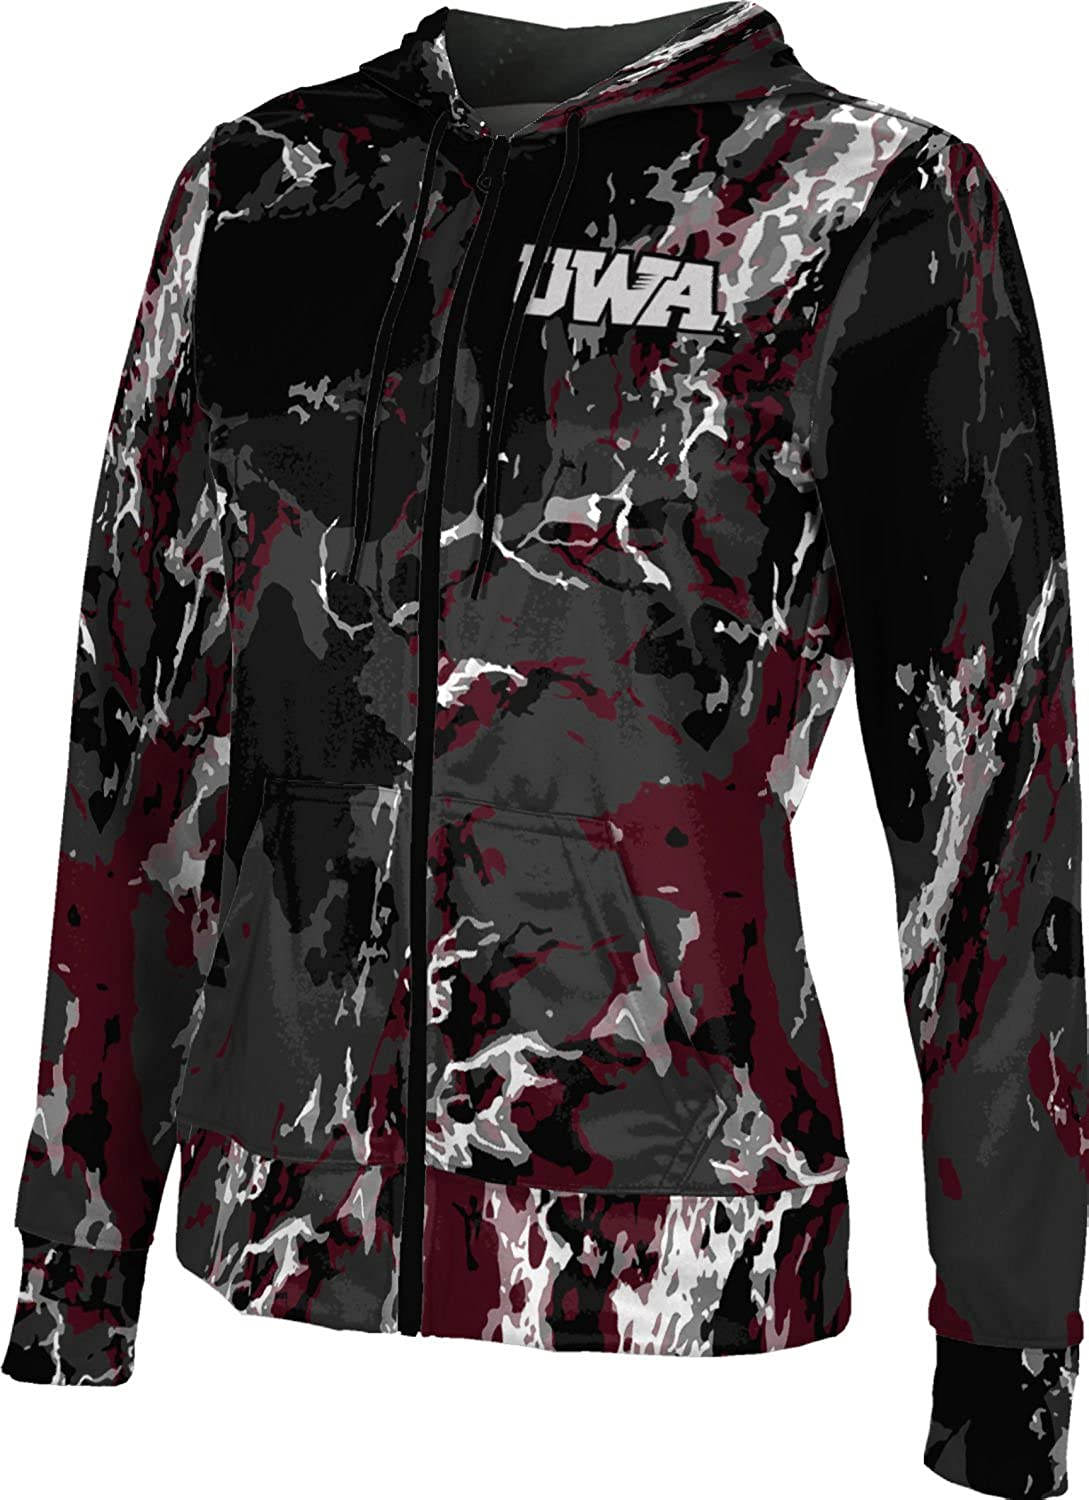 School Spirit Sweatshirt ProSphere University of West Alabama Girls Zipper Hoodie Marble